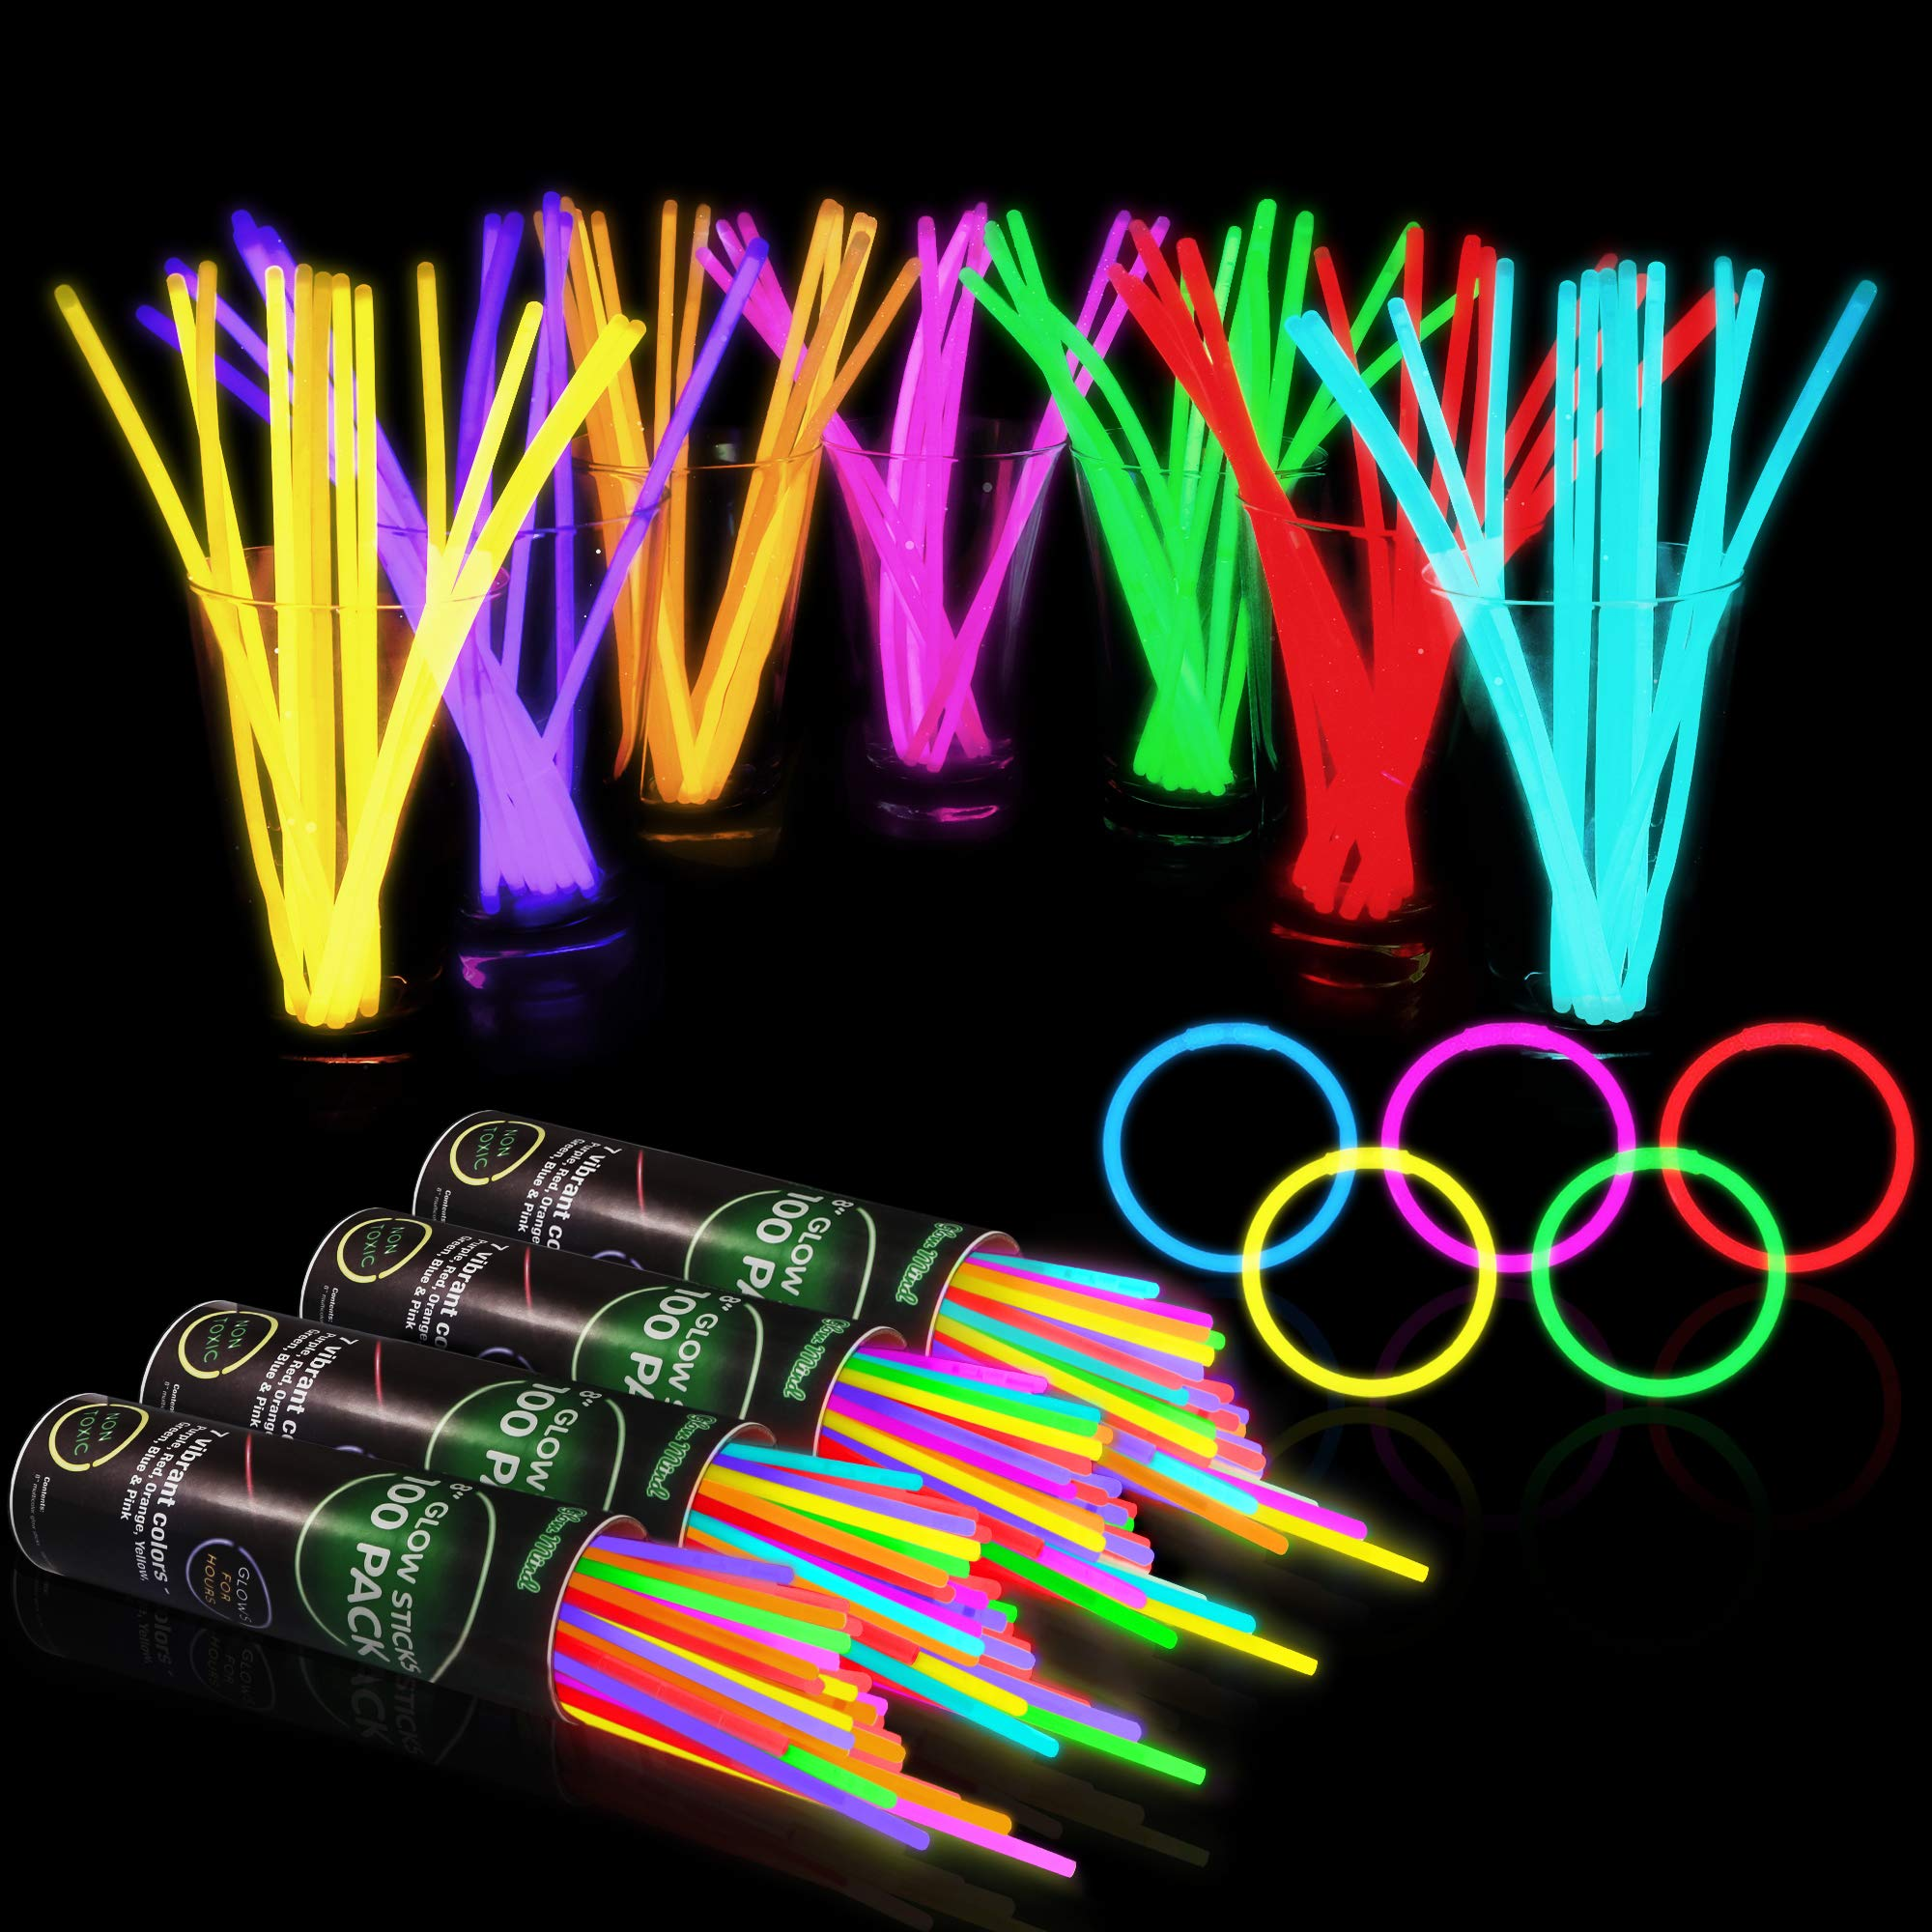 400 Glow Sticks Bulk Party Supplies - Glow in The Dark Fun Party Pack with 8'' Glowsticks and Connectors for Bracelets and Necklaces for Kids and Adults by Glow Mind (Image #1)